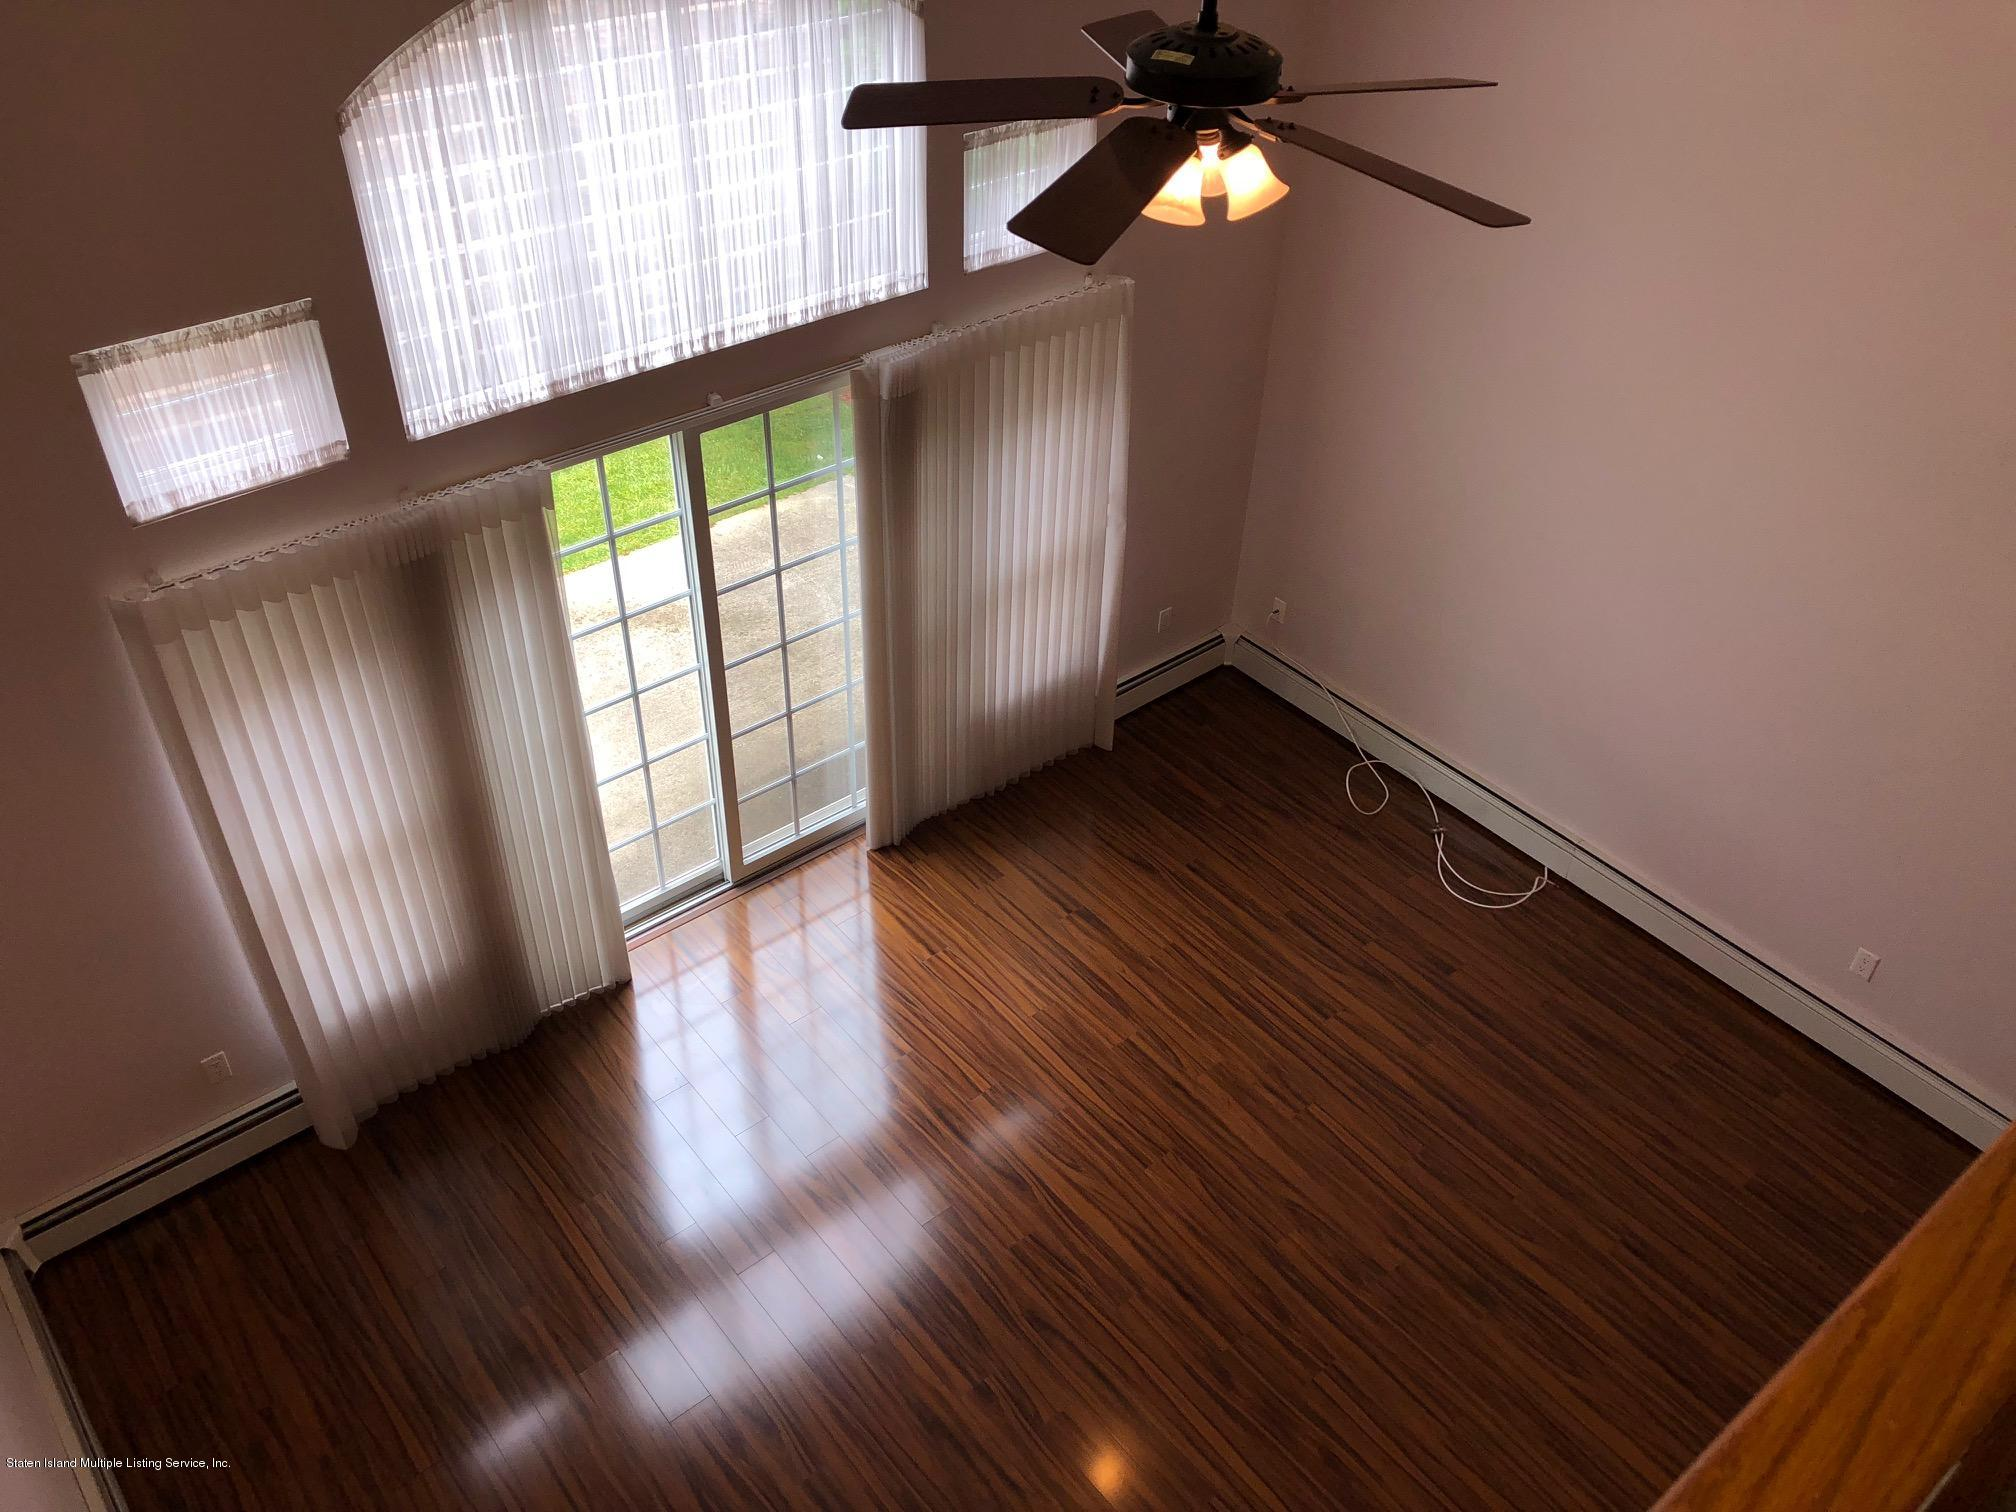 Single Family - Attached 61 Topside Lane  Staten Island, NY 10309, MLS-1129867-19